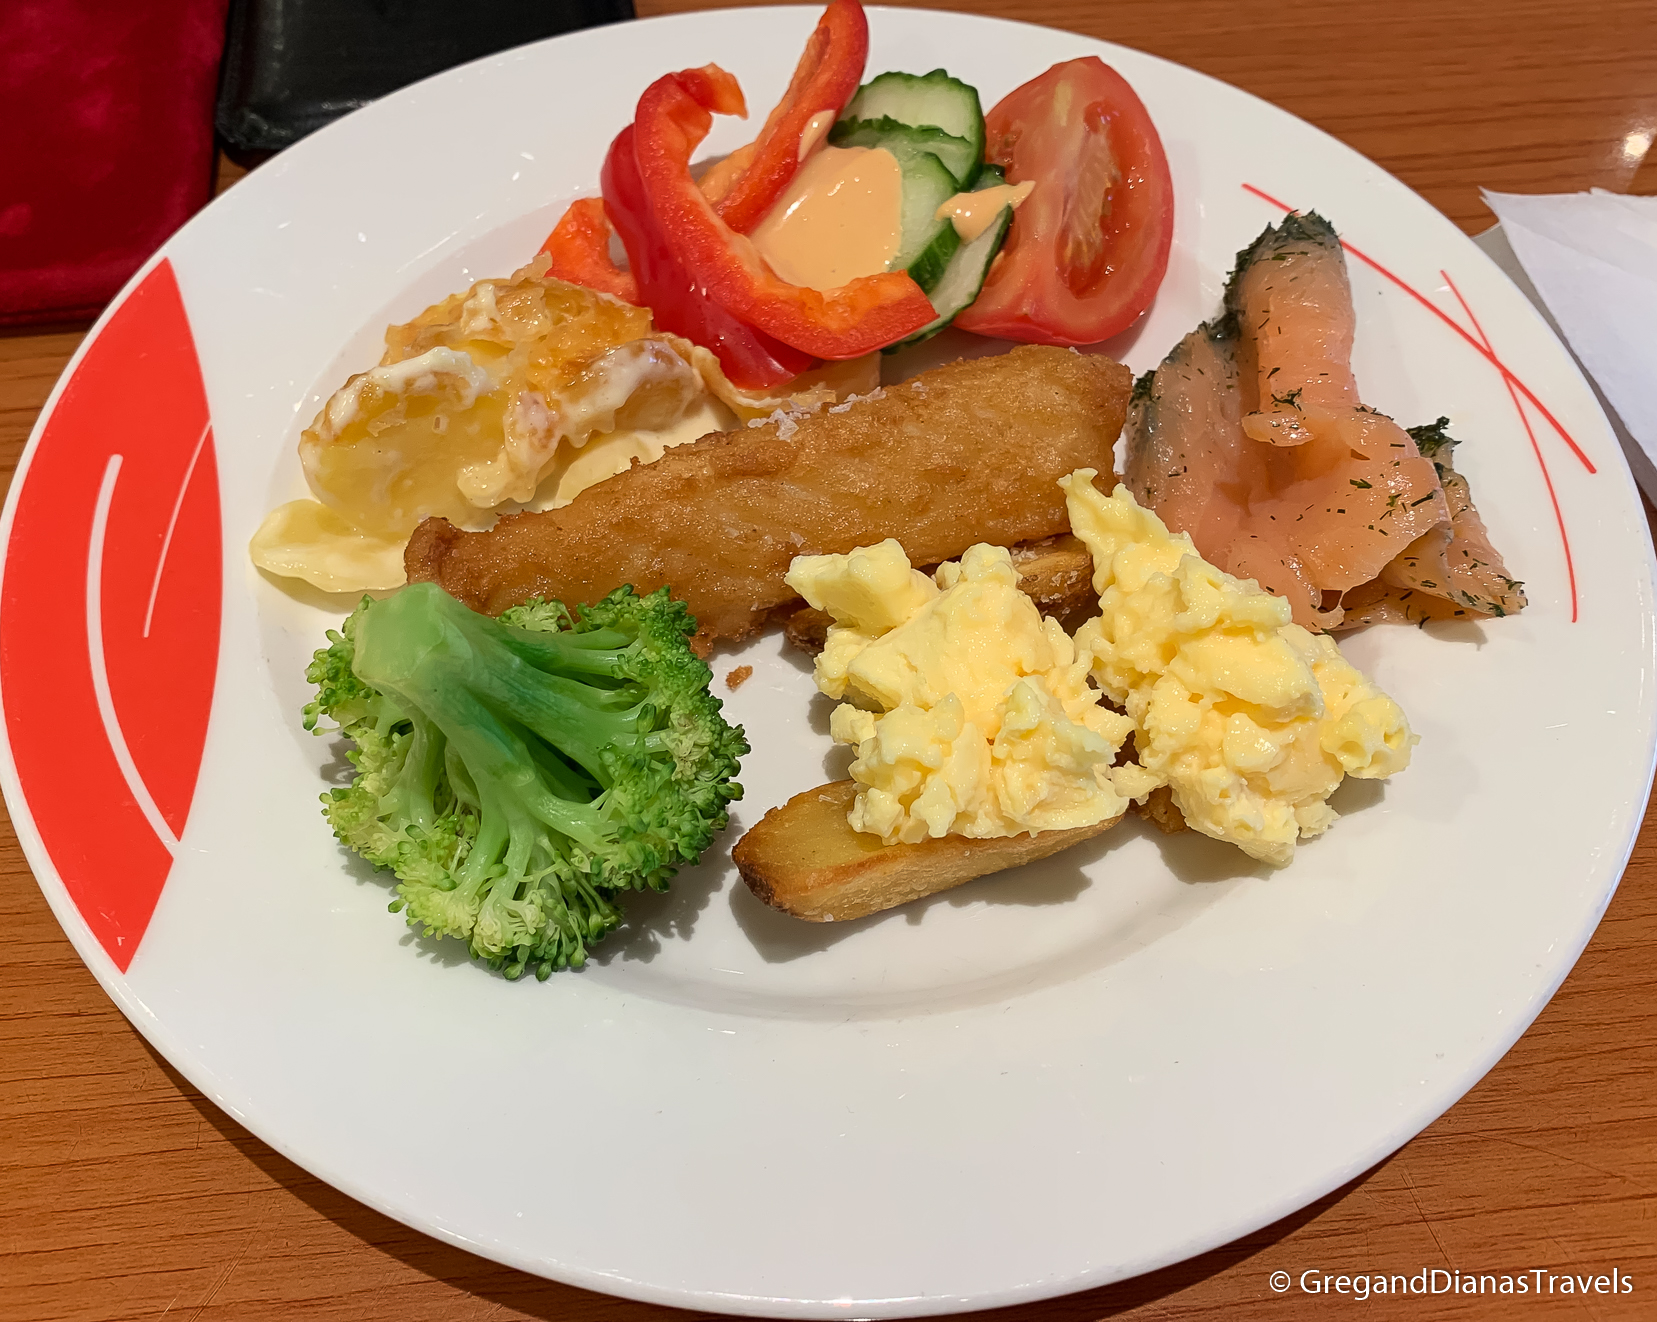 Scandinavian lunch with fish and vegetables